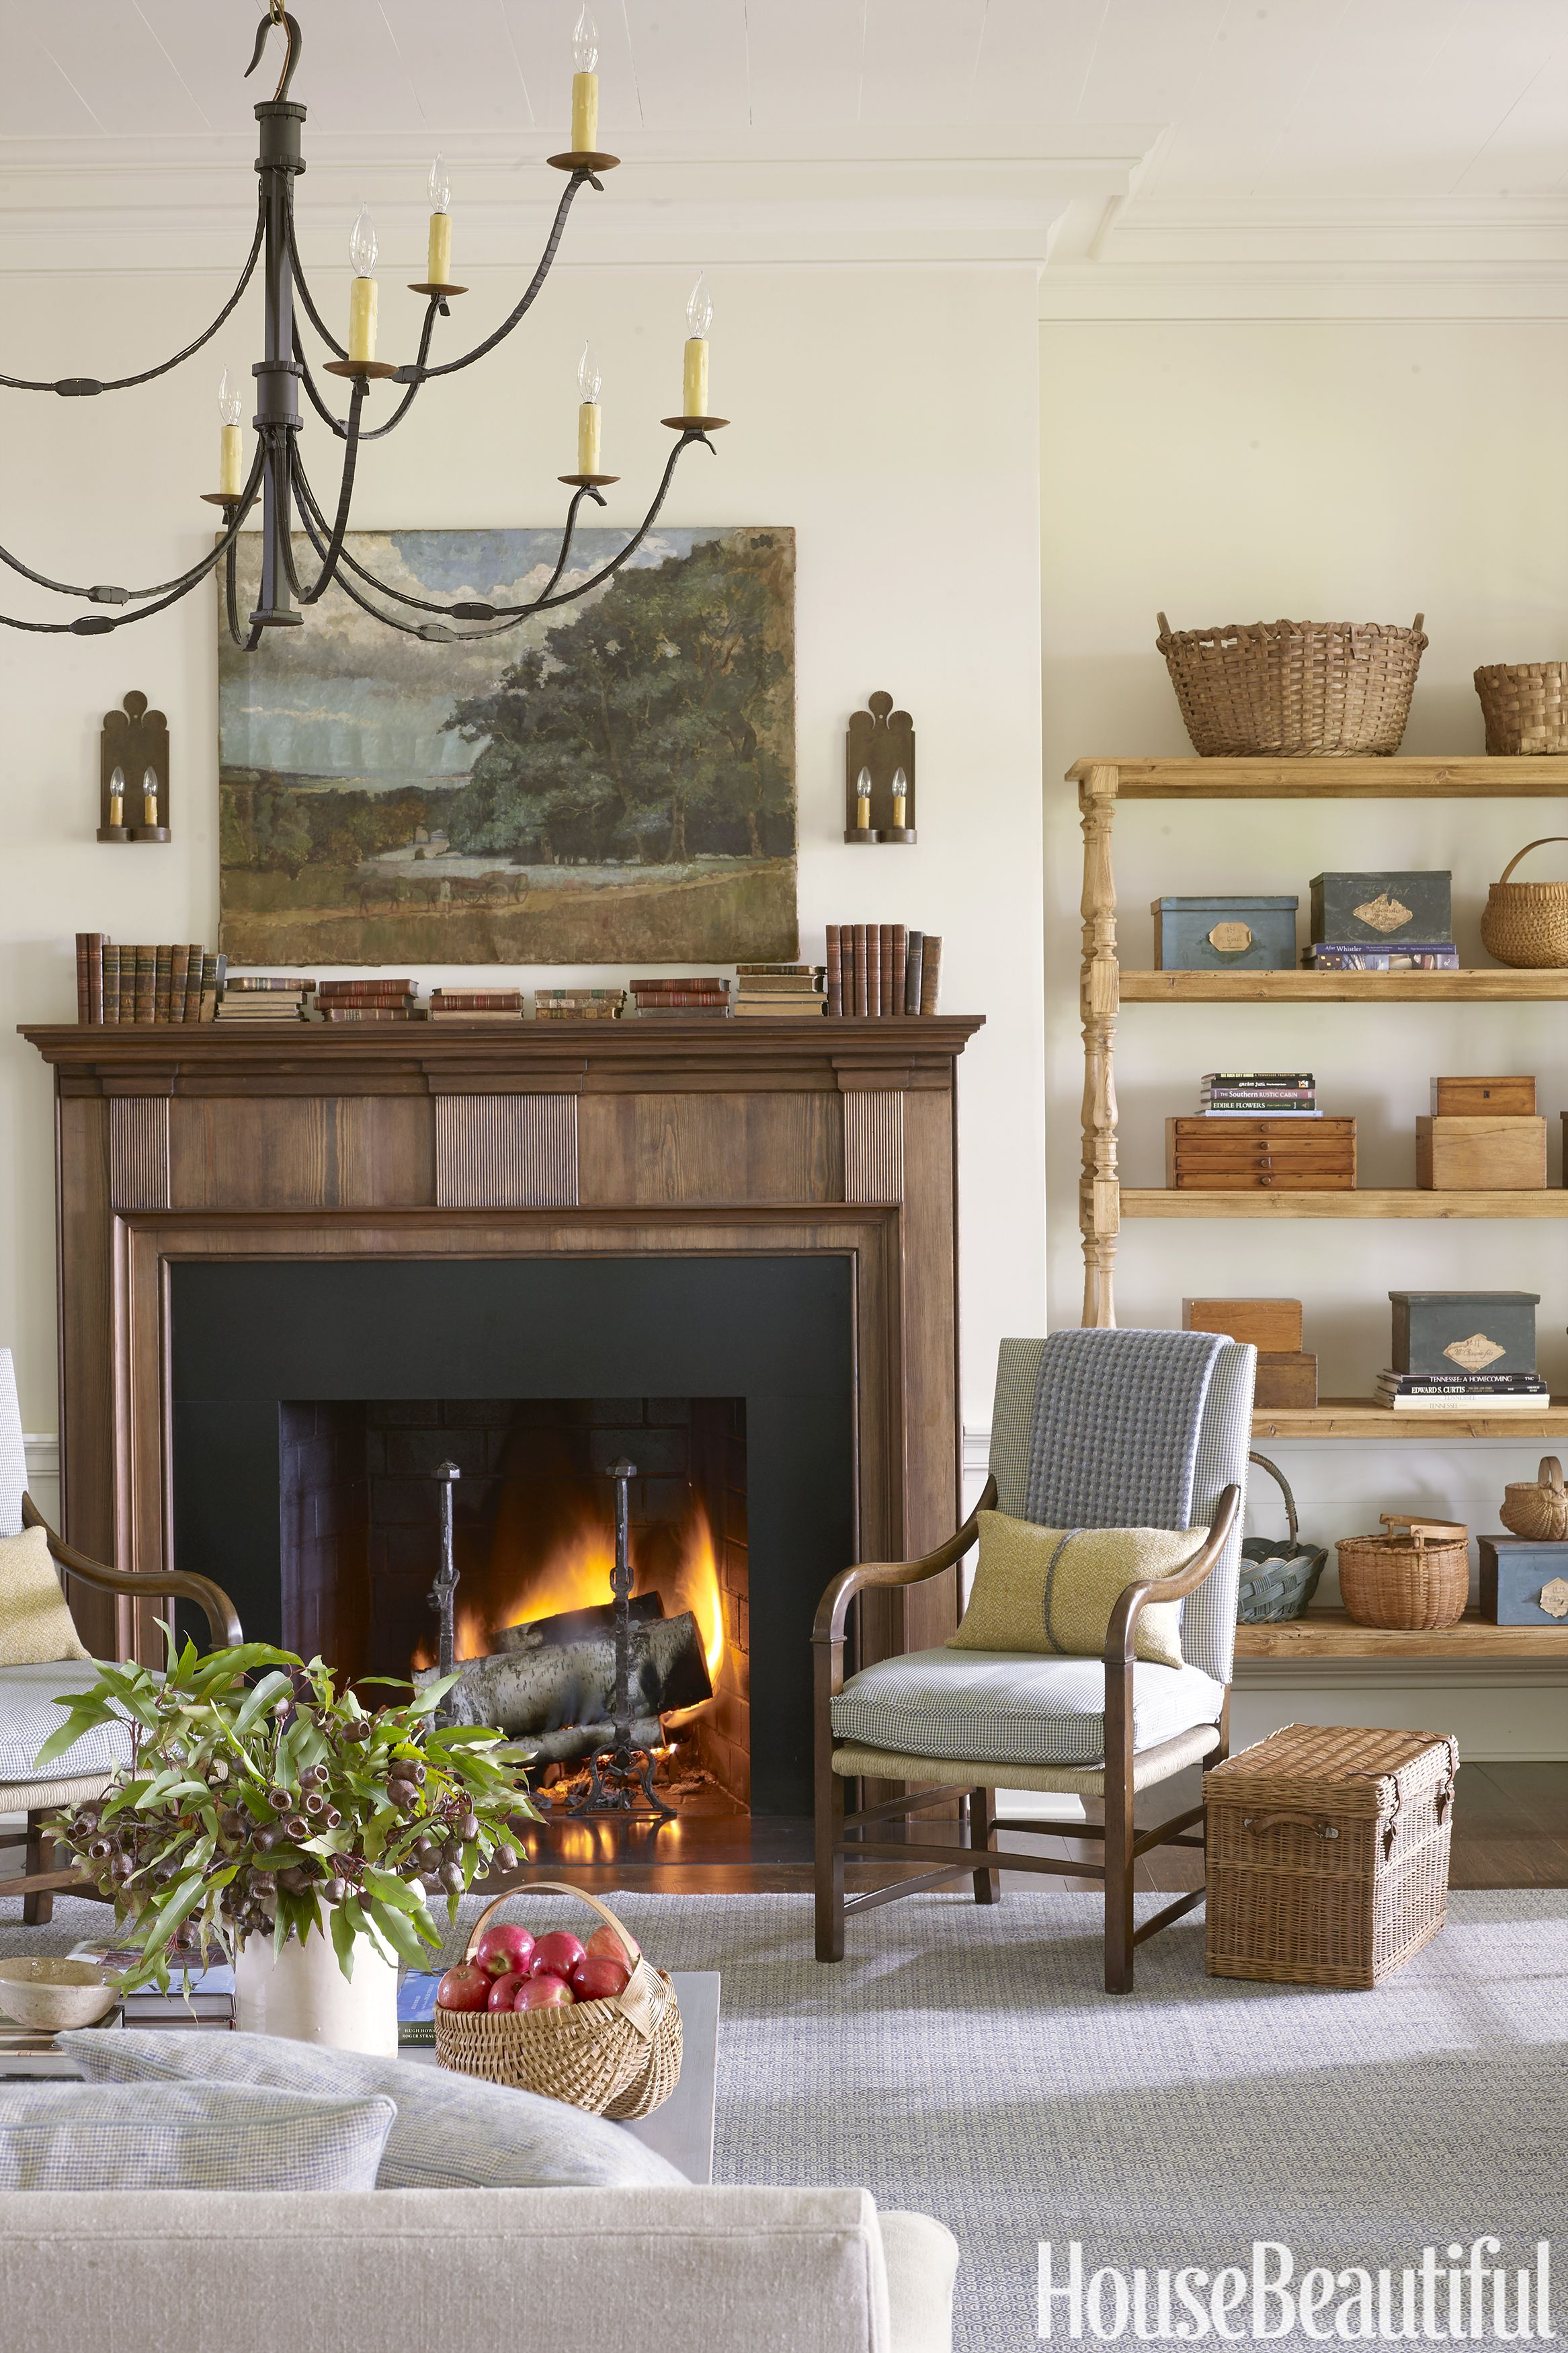 15 Cozy Fireplace Ideas   Best Fireplace Mantel Designs, Tips, And Photos